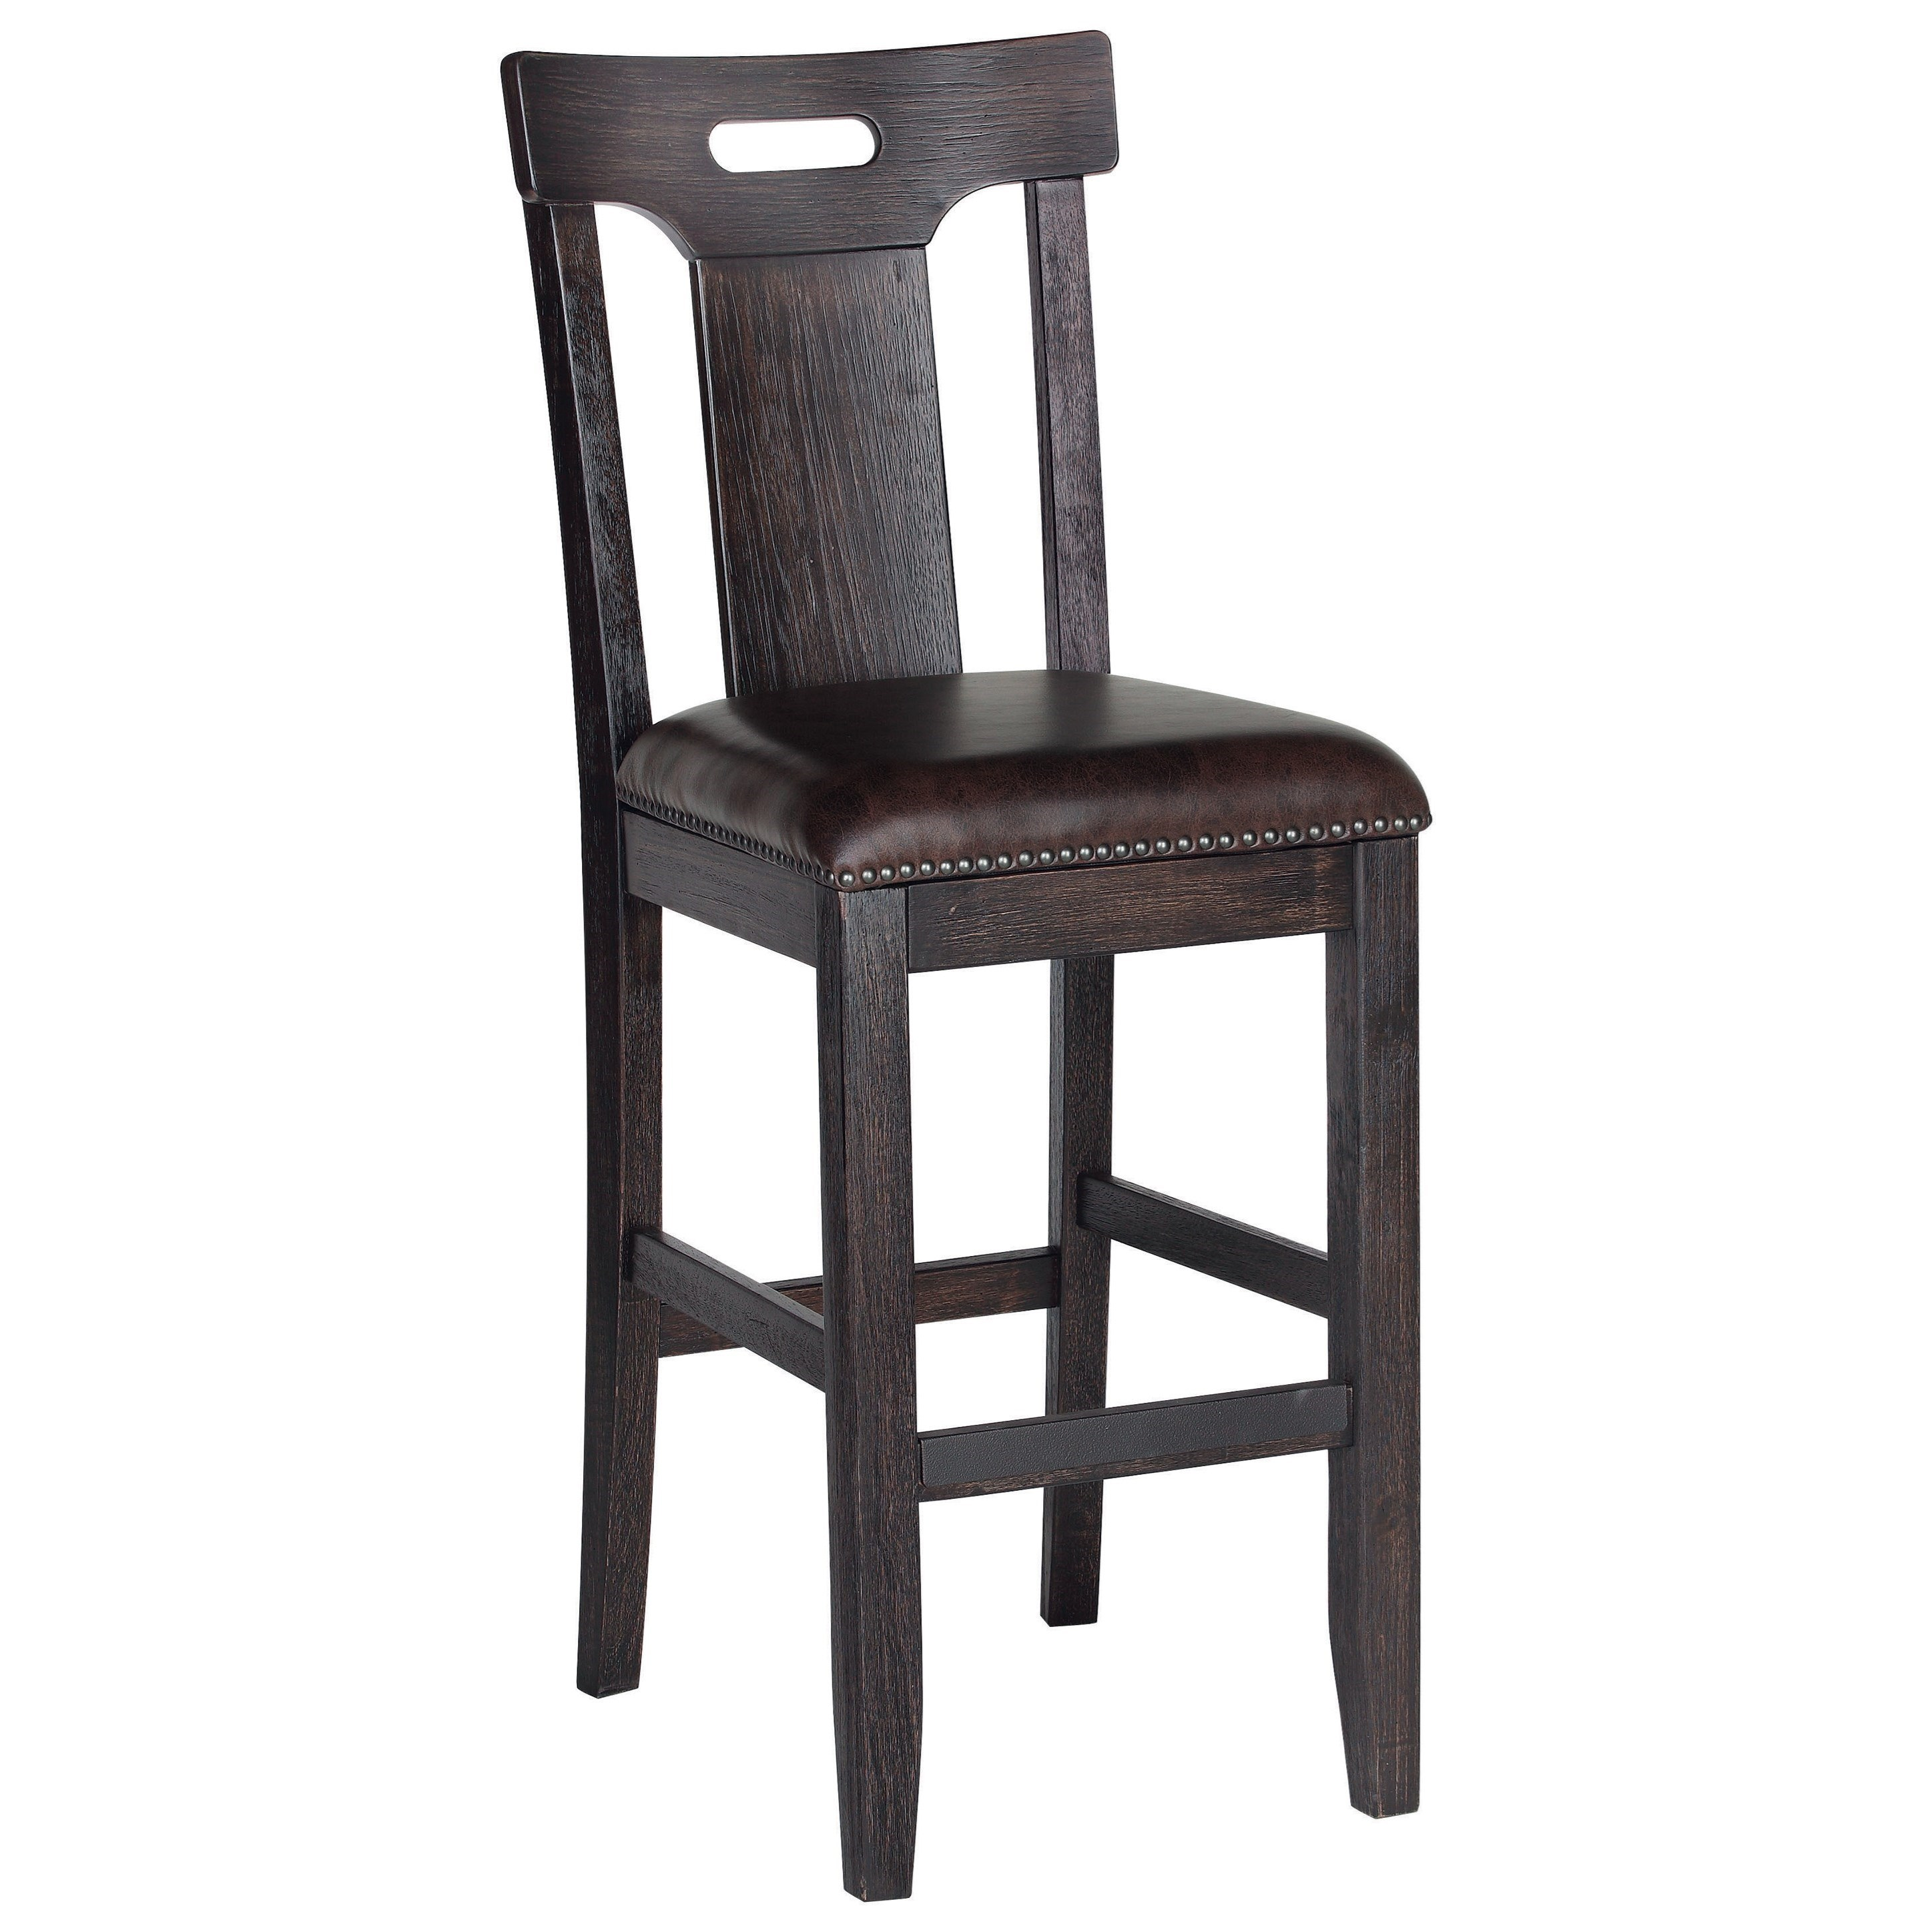 Furniture City Brewing - Stout Bar Chair by Samuel Lawrence at Lynn's Furniture & Mattress